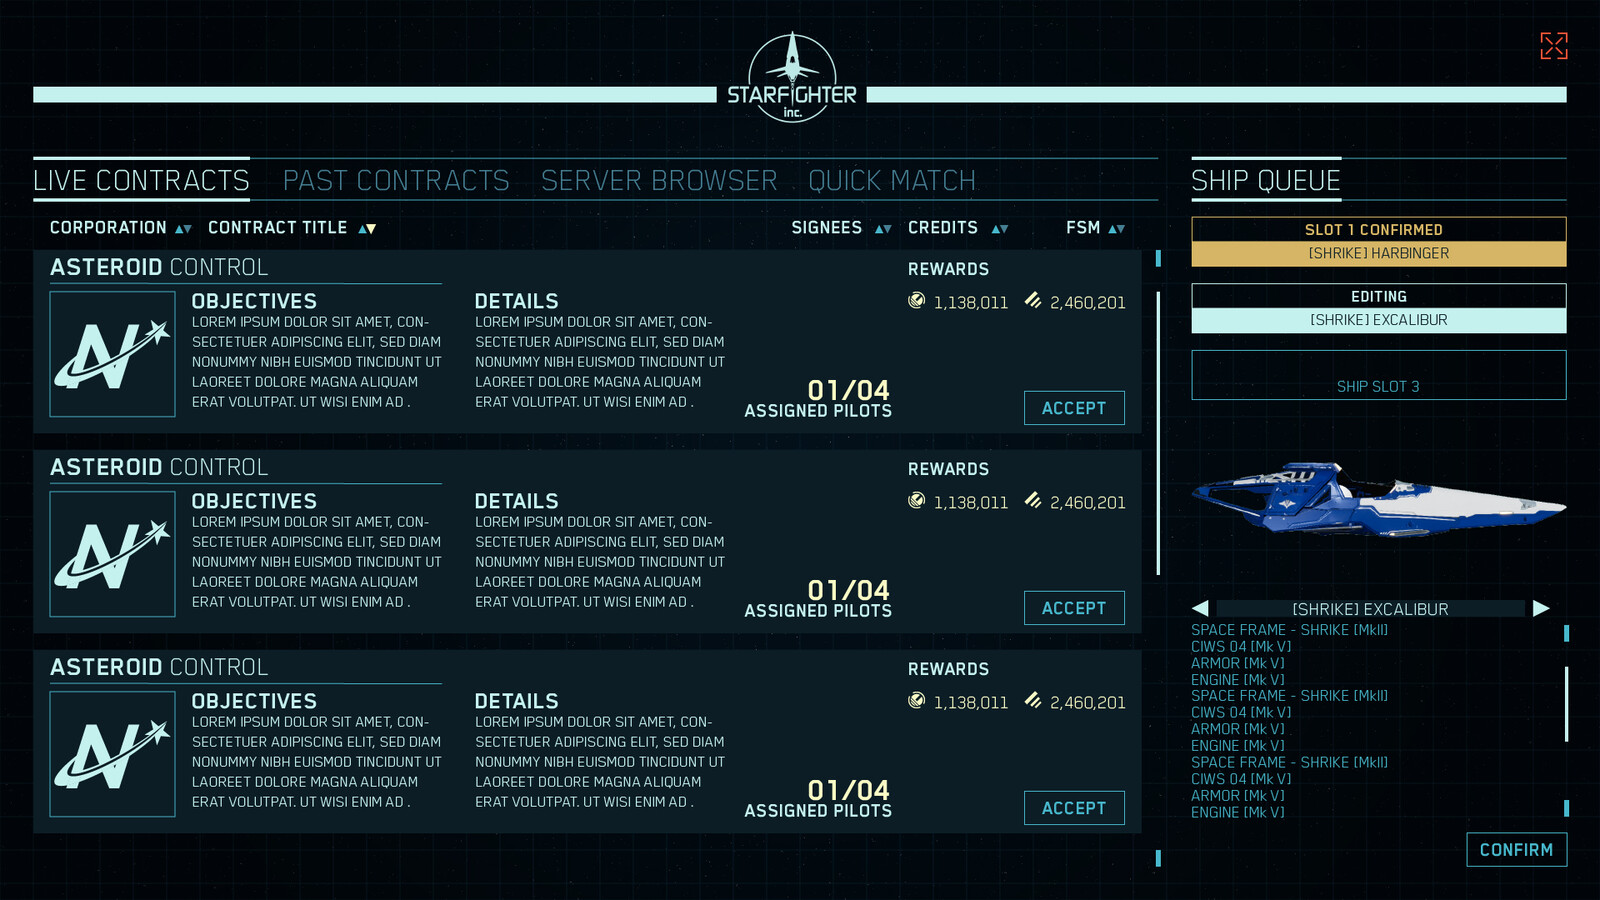 Contract Portal terminal. This is how pilots would access matches as 'contracts' they could sign up for. Pilots also could customize their loadout for their ship here before deploying, accessing different pre-built configurations as well.